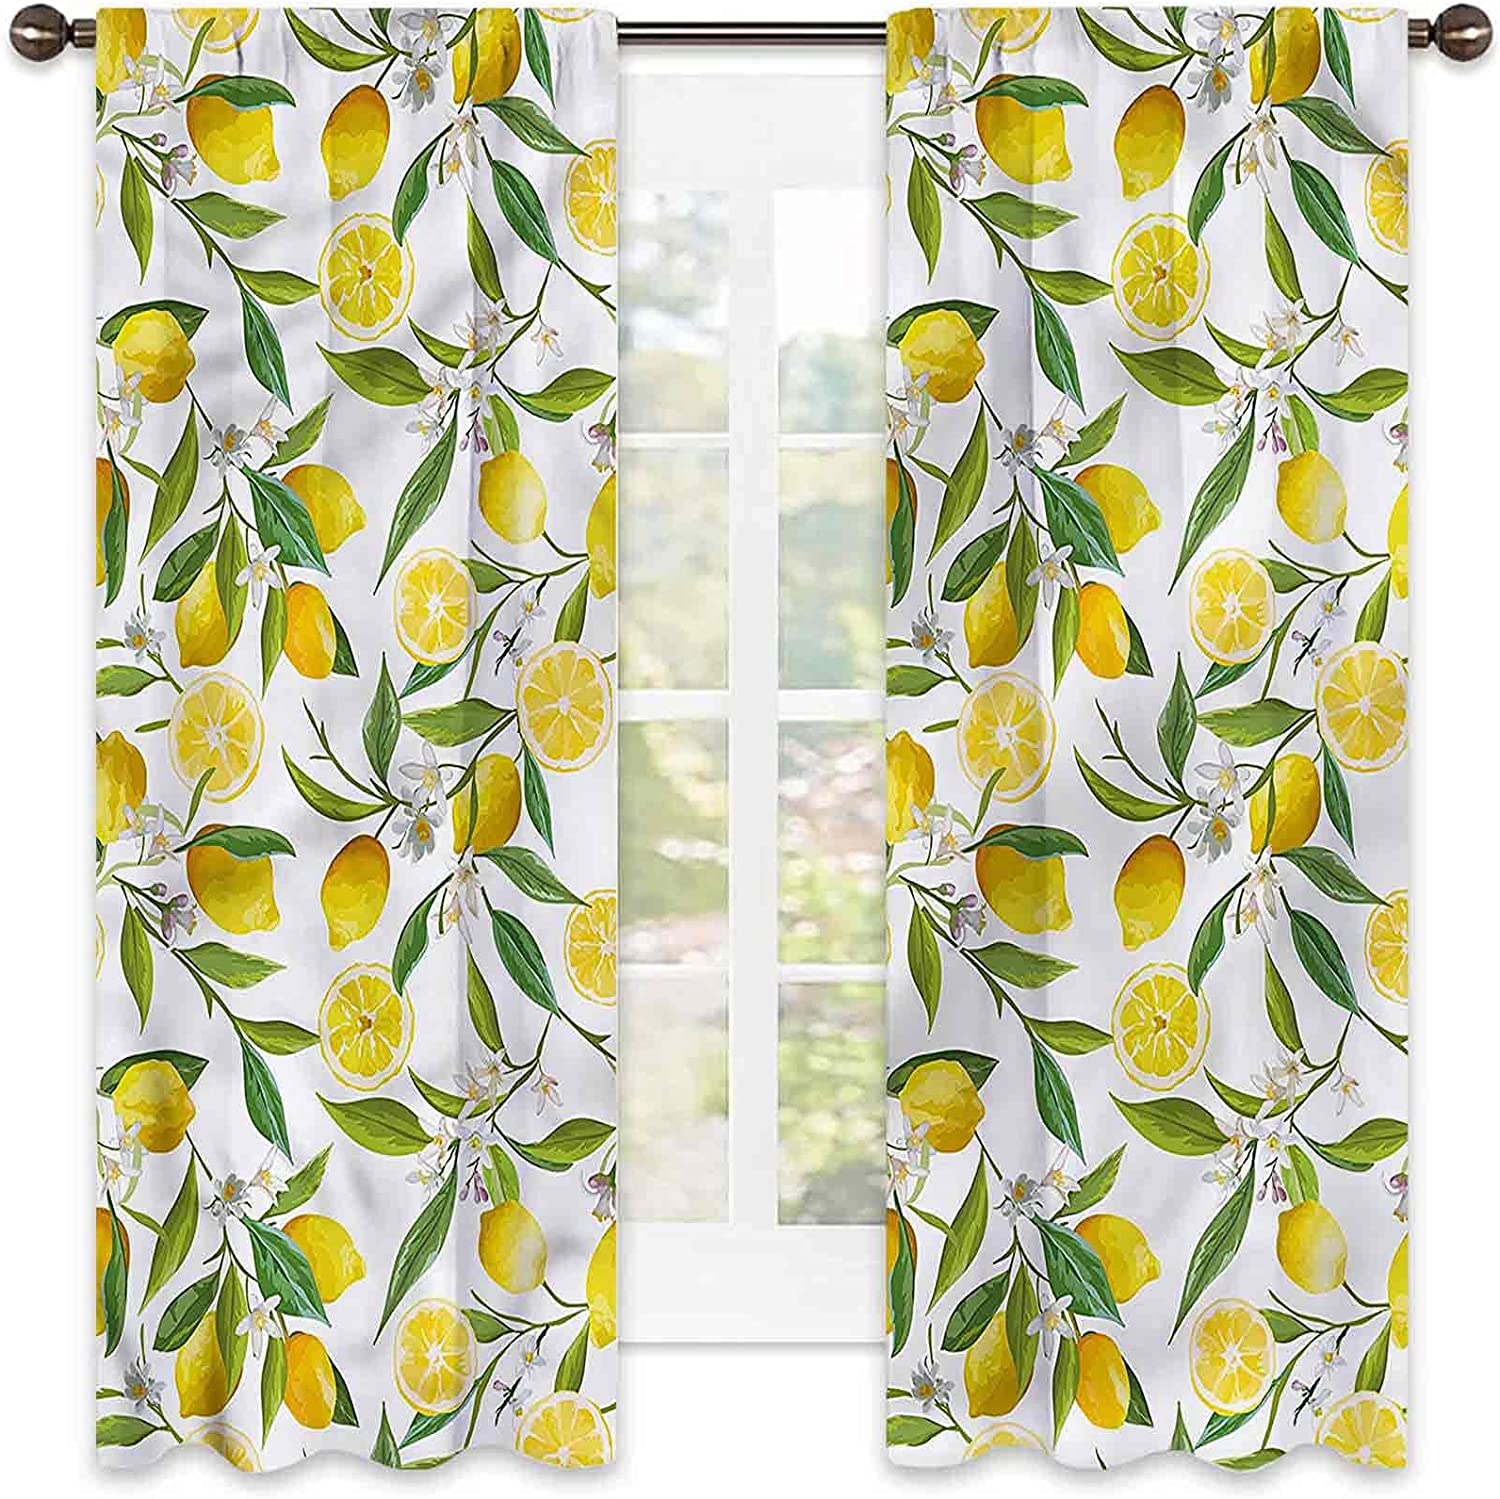 Nature Bedroom Rod Pocket Blackout Delicious Safety and trust Exotic Ga Same day shipping Curtains